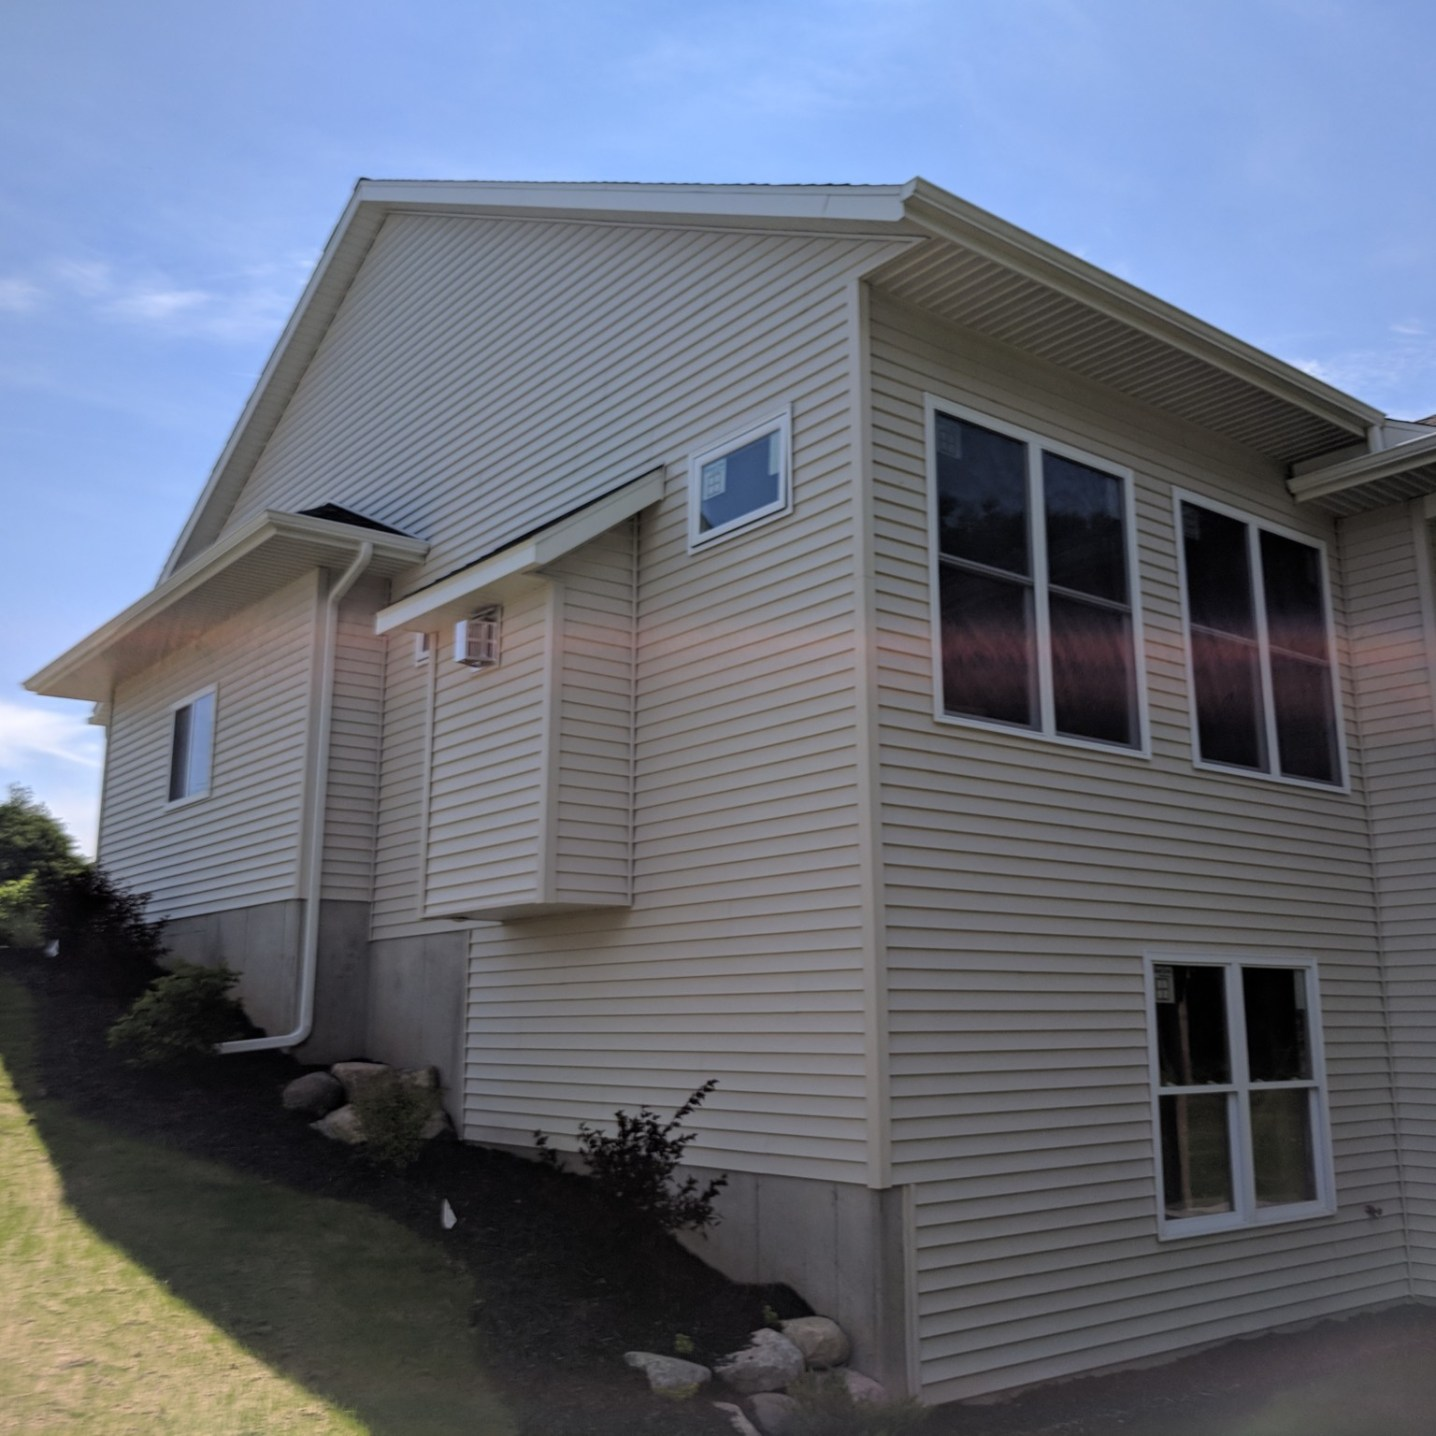 `Single Family-2 stall-BO-Side-Deck and Patio center